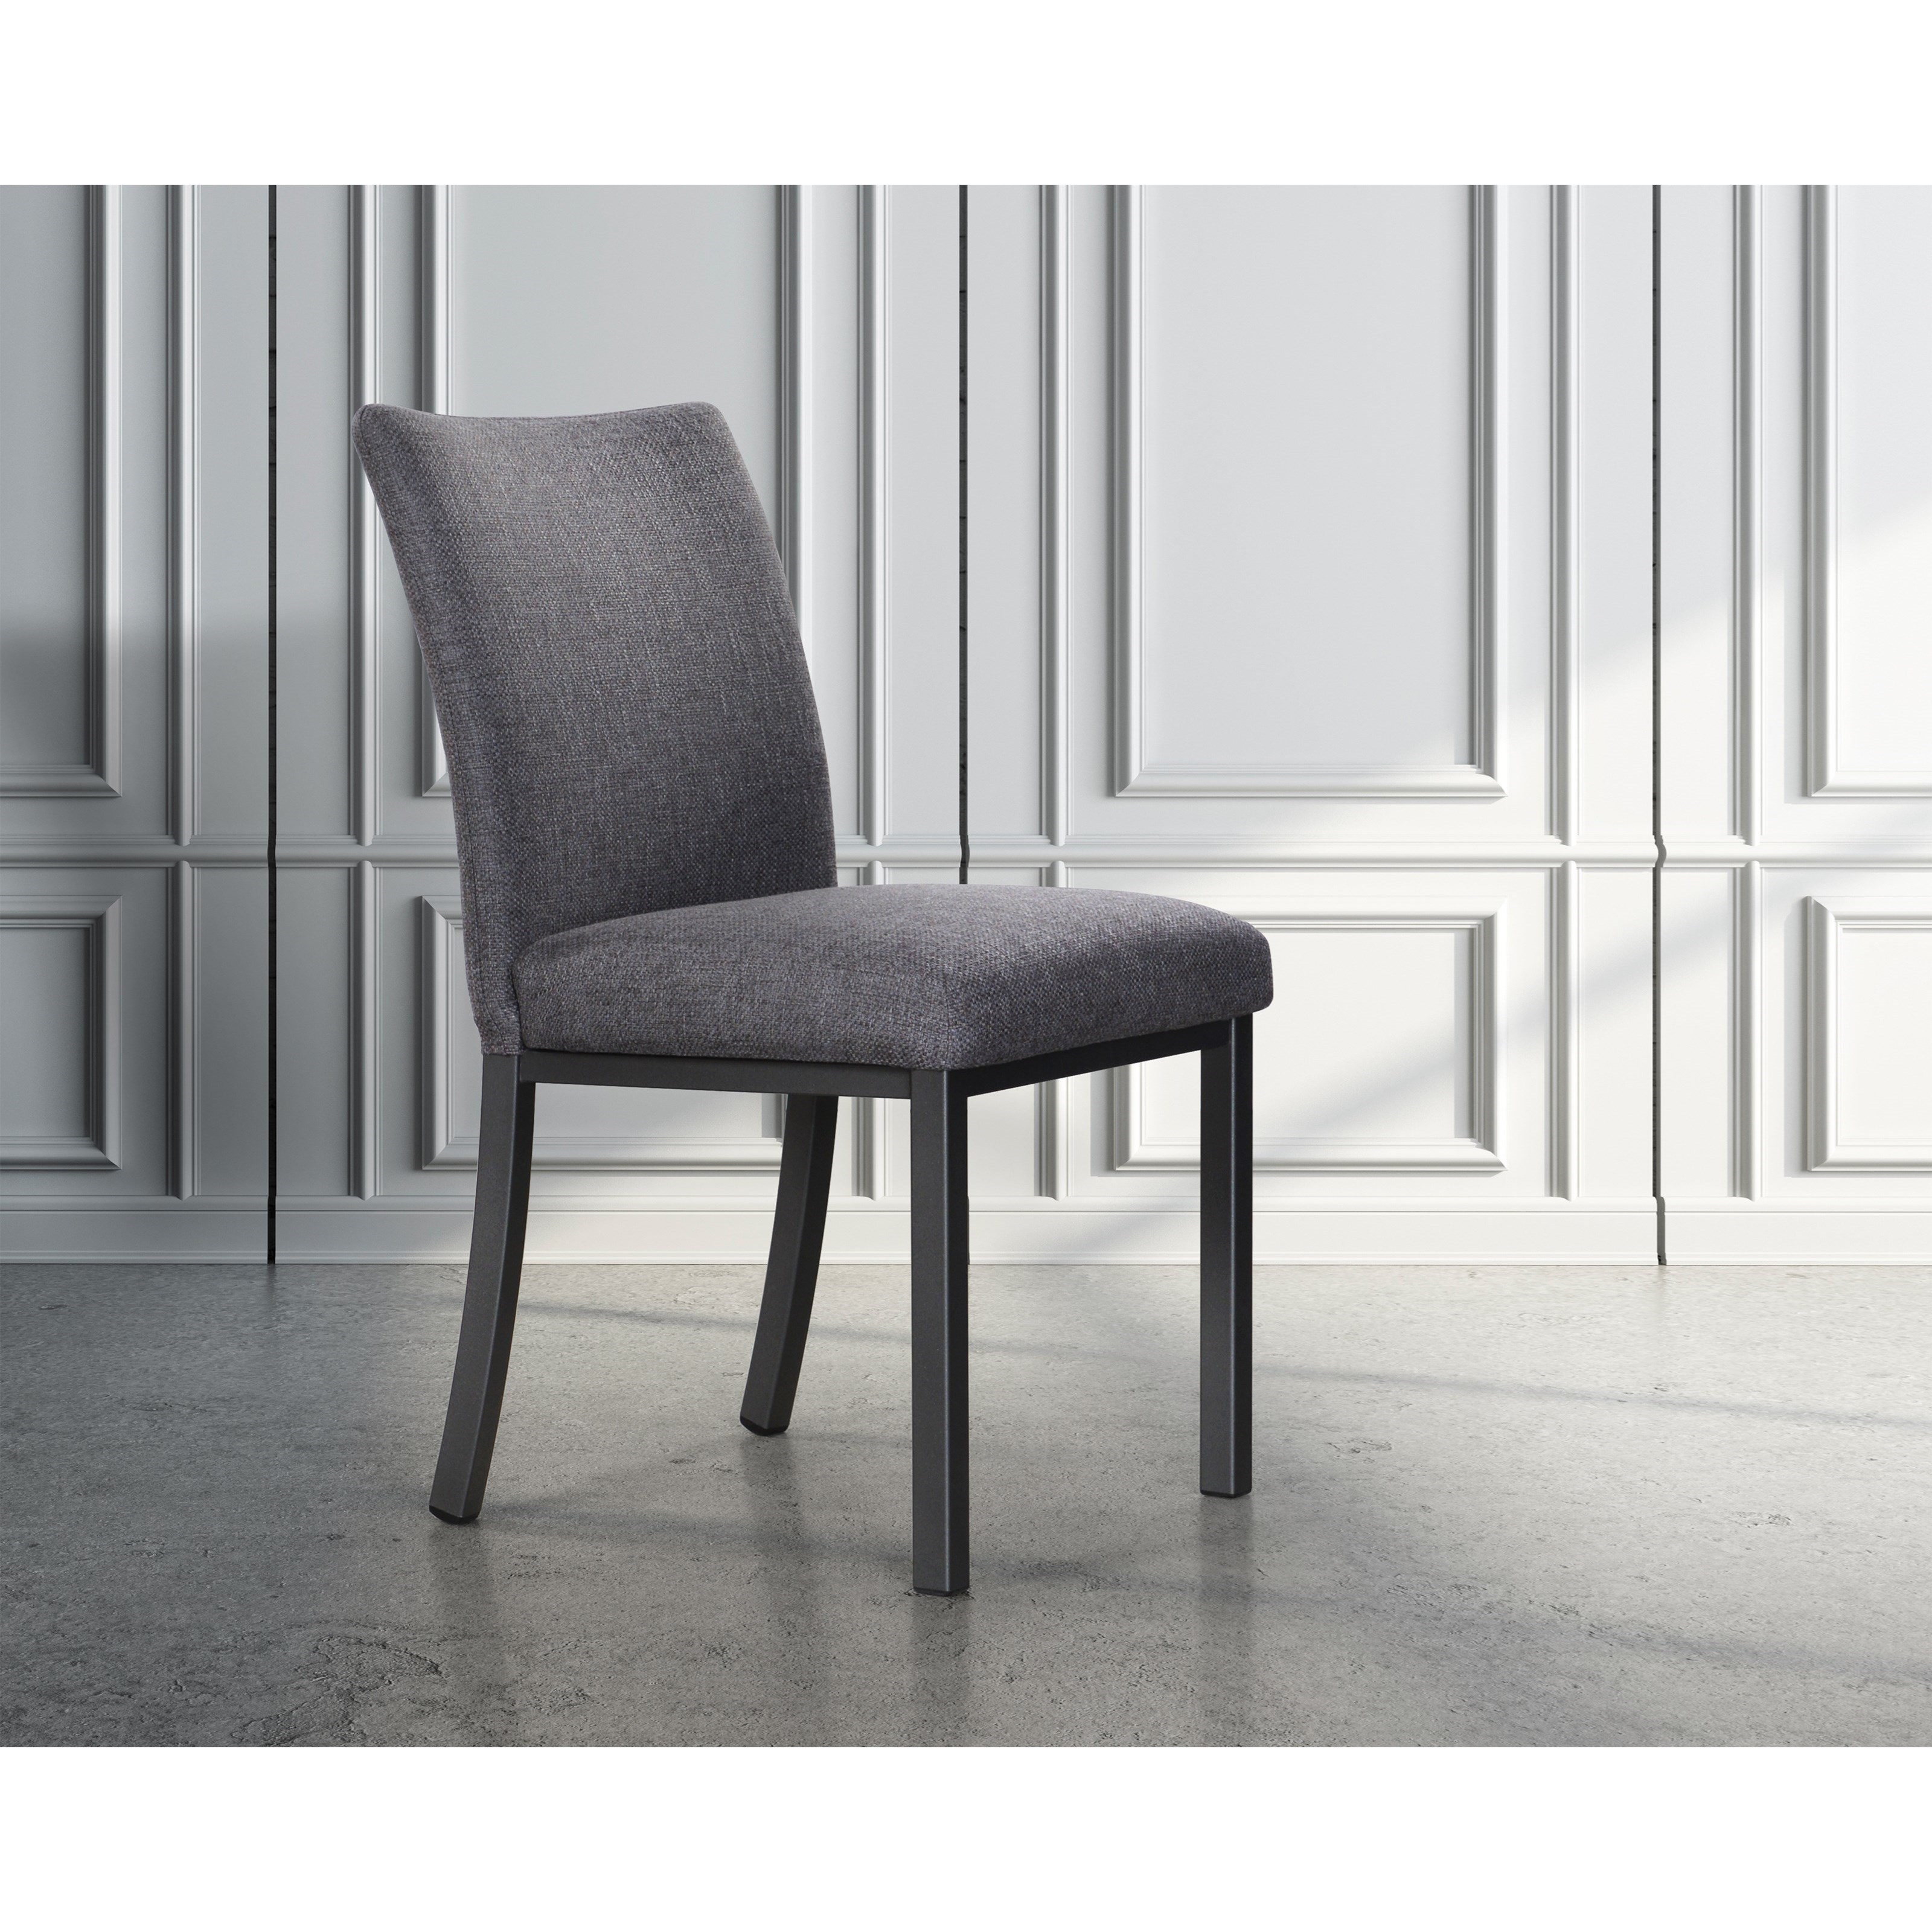 Trica Contemporary Seating Biscaro Plus Upholstered Dining